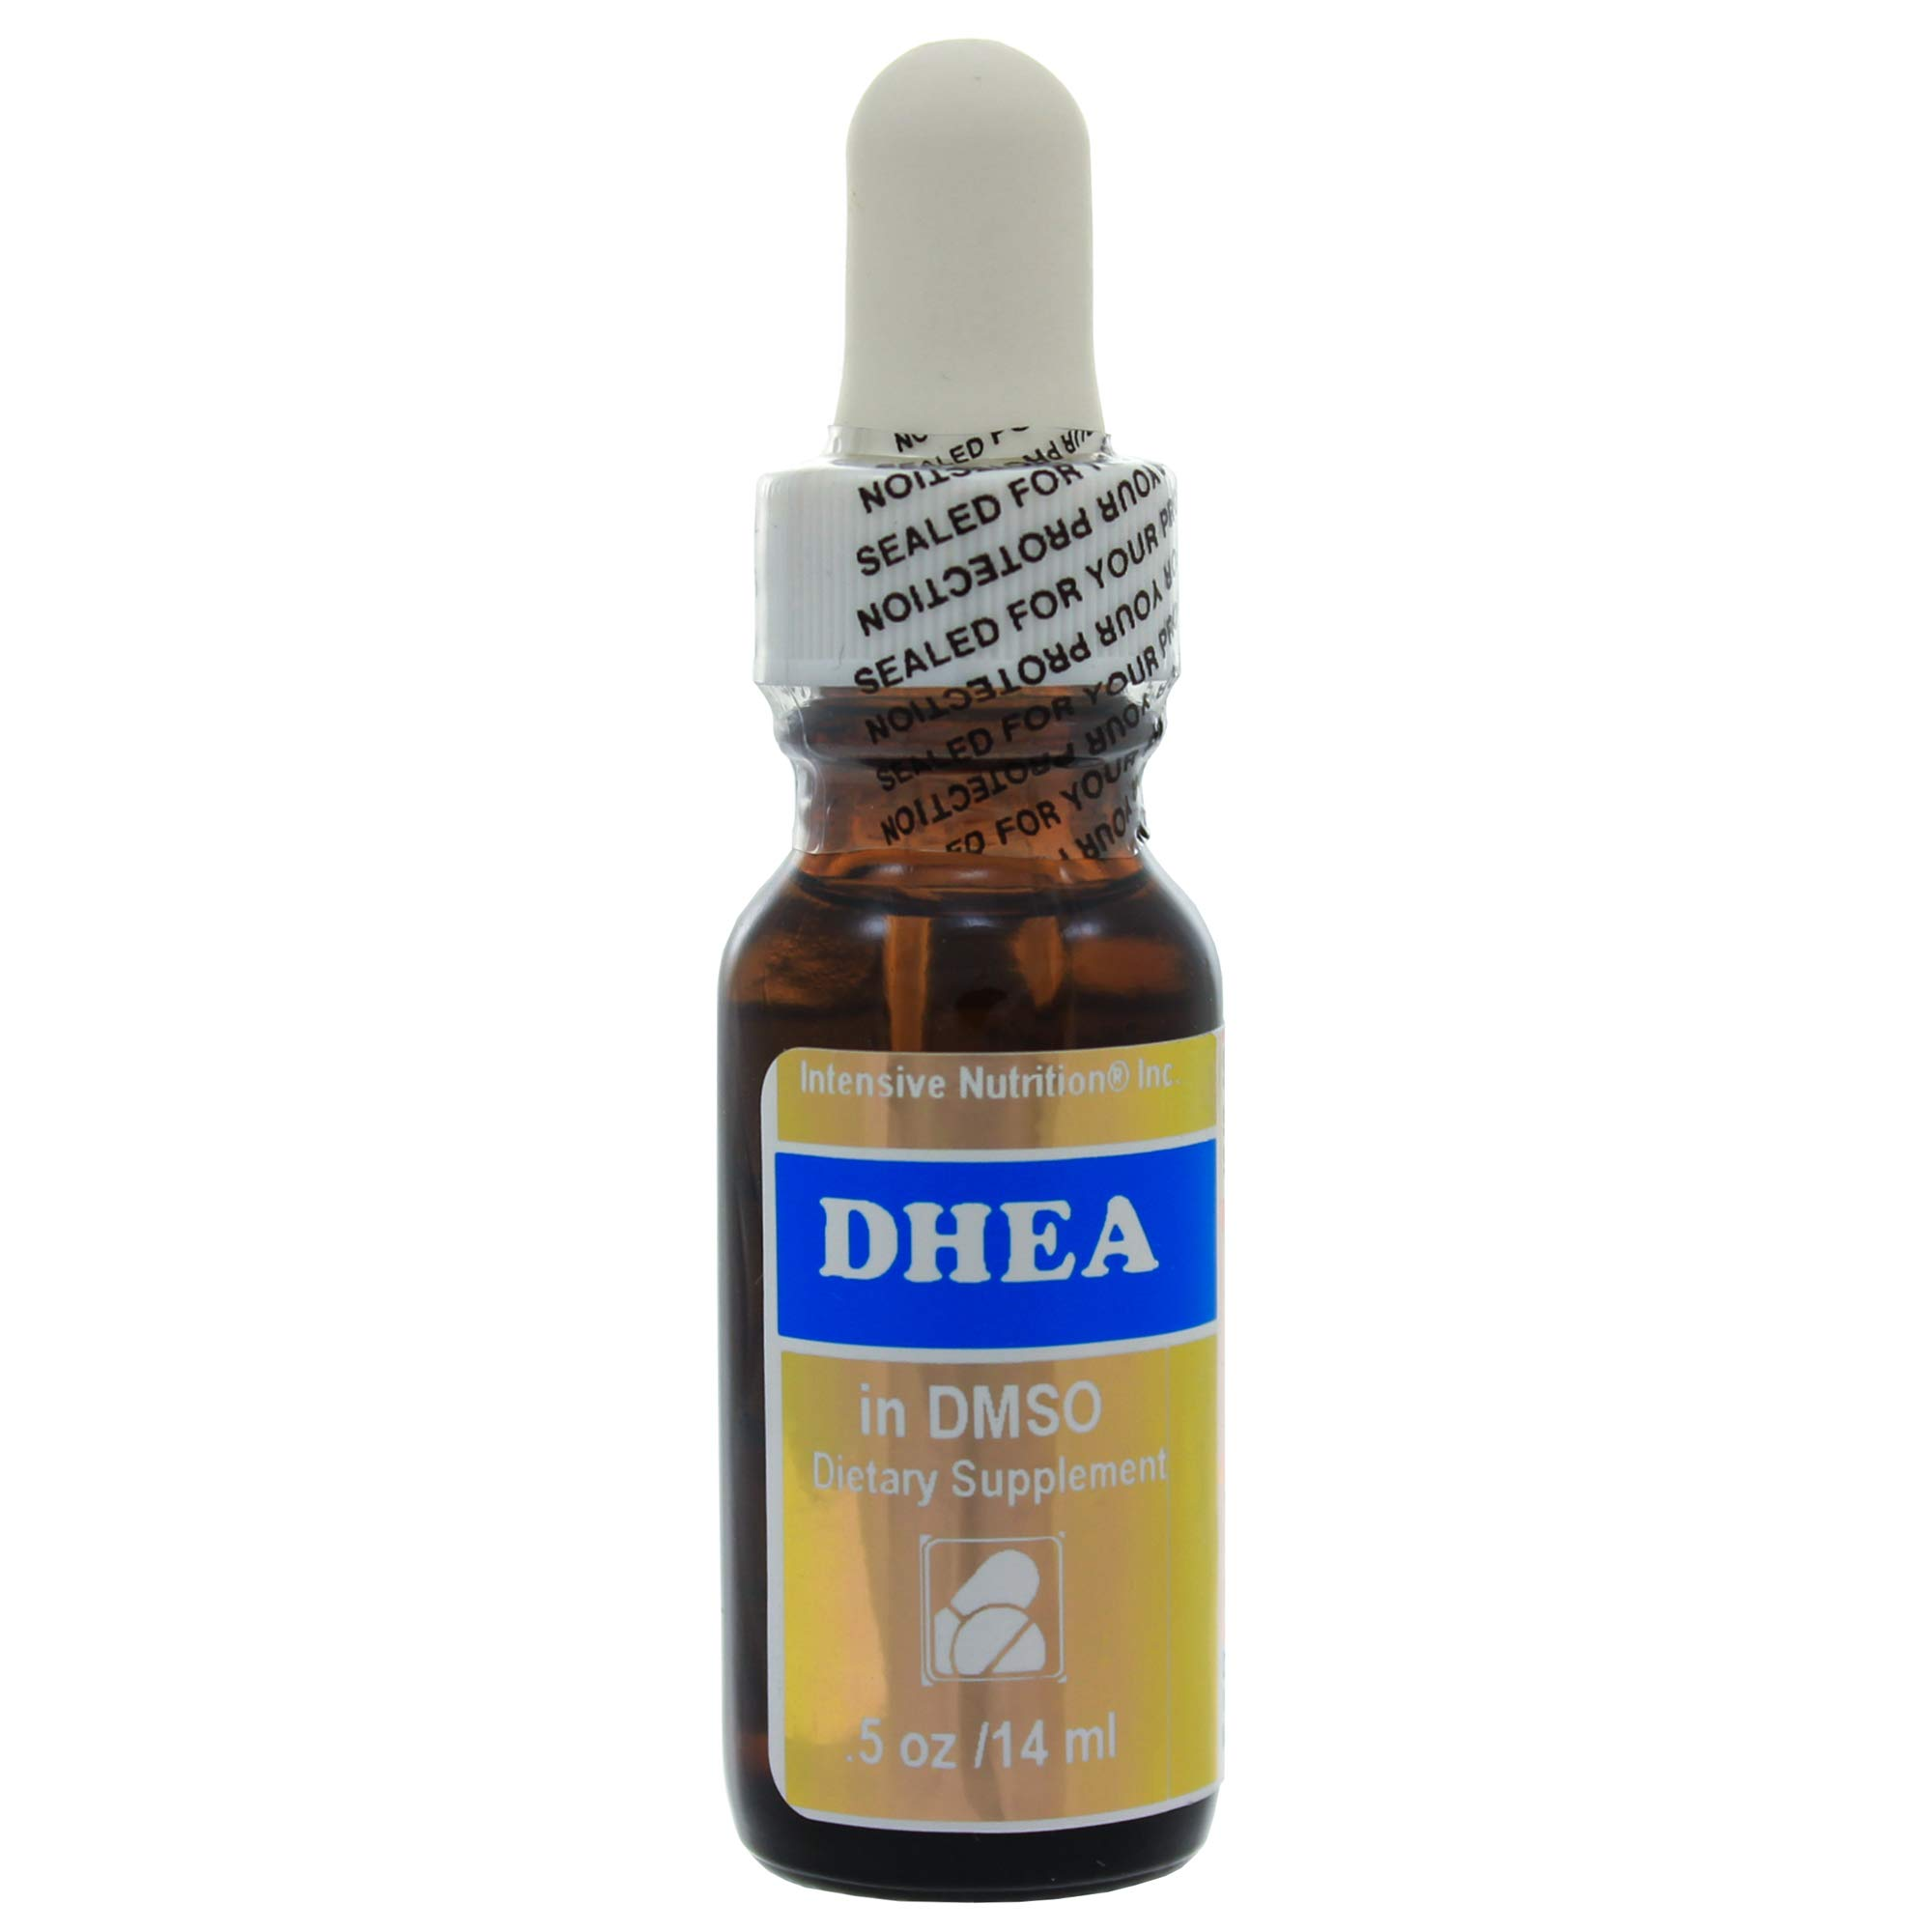 DHEA High Absorption Liquid 5 mg/Drop, Topical 14 Milliliters - Pack of 3